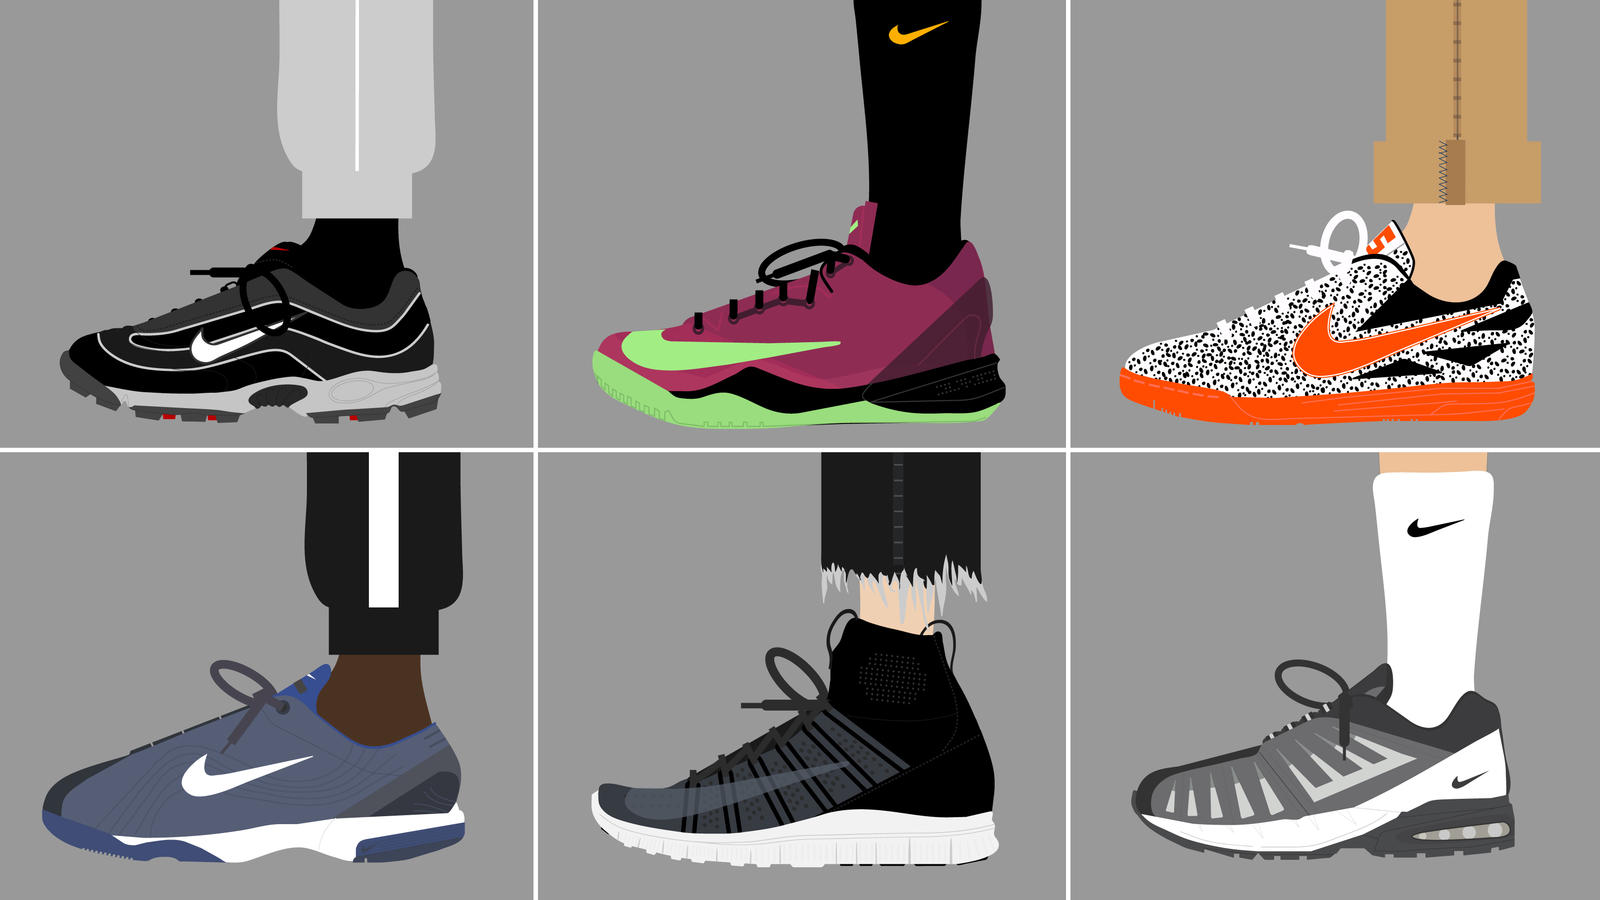 Six Reasons Why the Mercurial is More